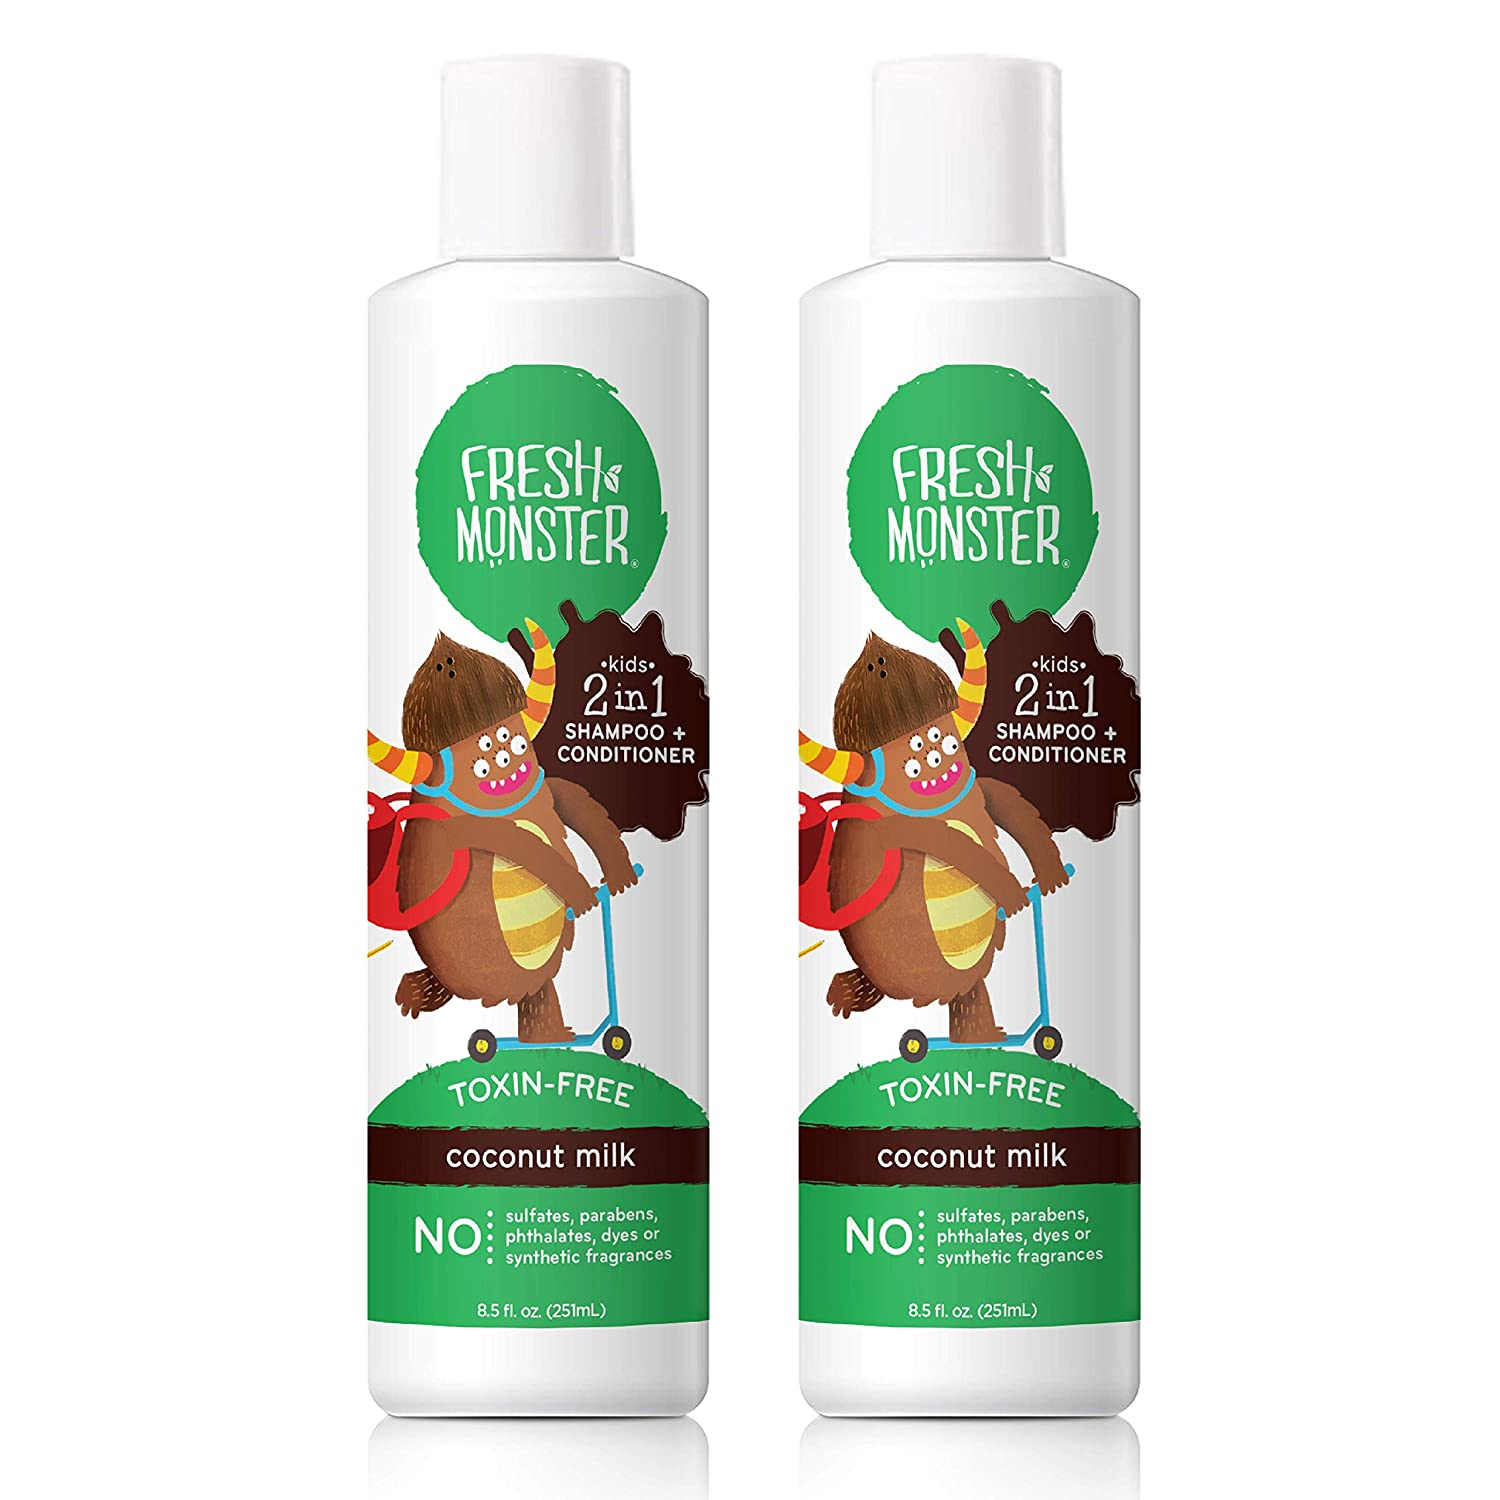 shampoo for toddlers with curly hair